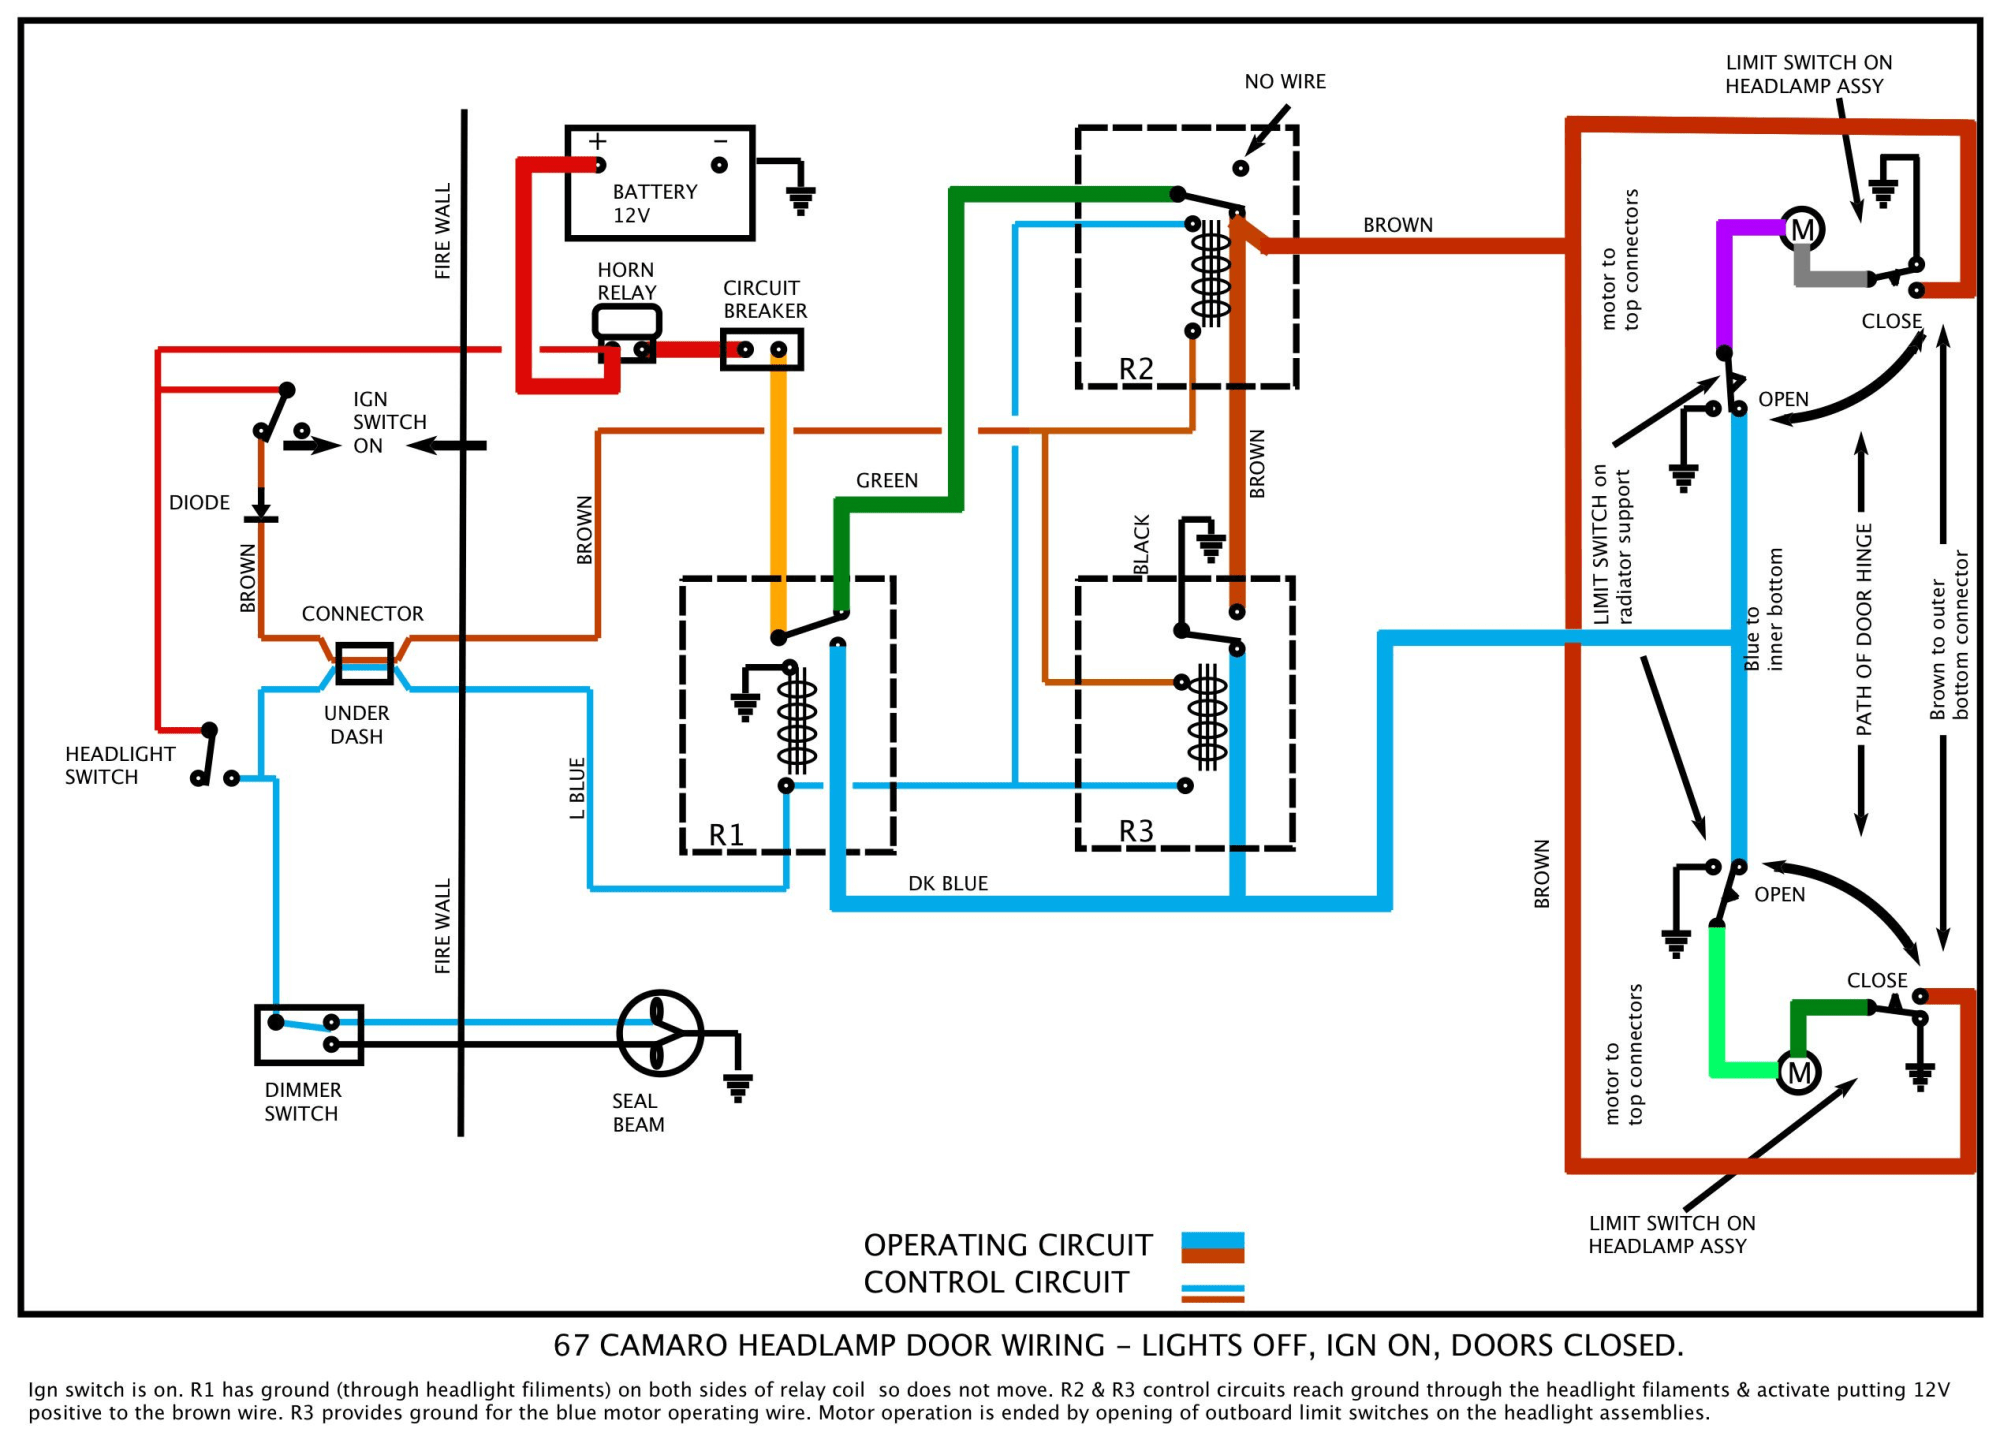 hight resolution of 1969 chevy camaro wiring diagram wiring diagram basic 1969 camaro factory tach wiring color